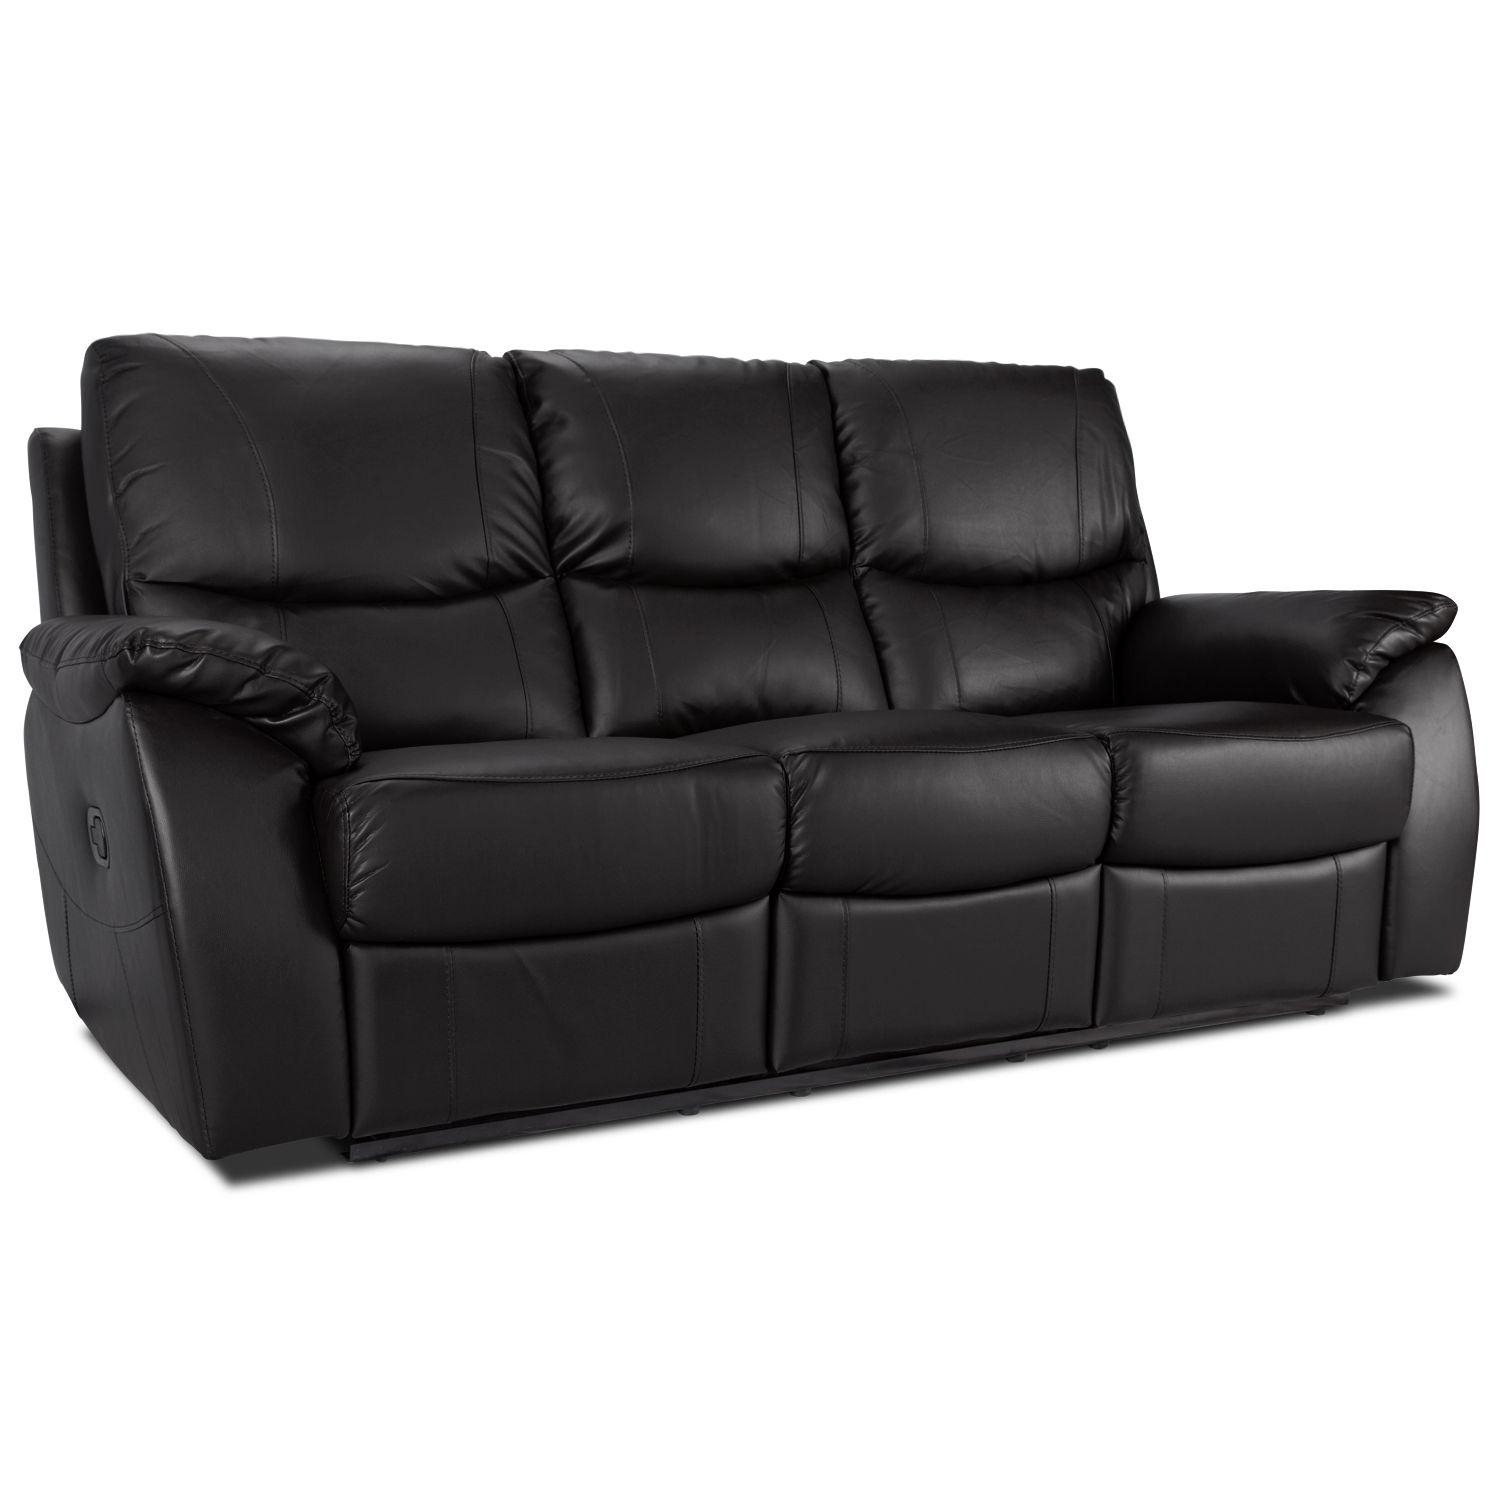 Panther 3 Seater Leather Recliner Sofa – Next Day Delivery Panther With Regard To 3 Seater Leather Sofas (View 6 of 20)